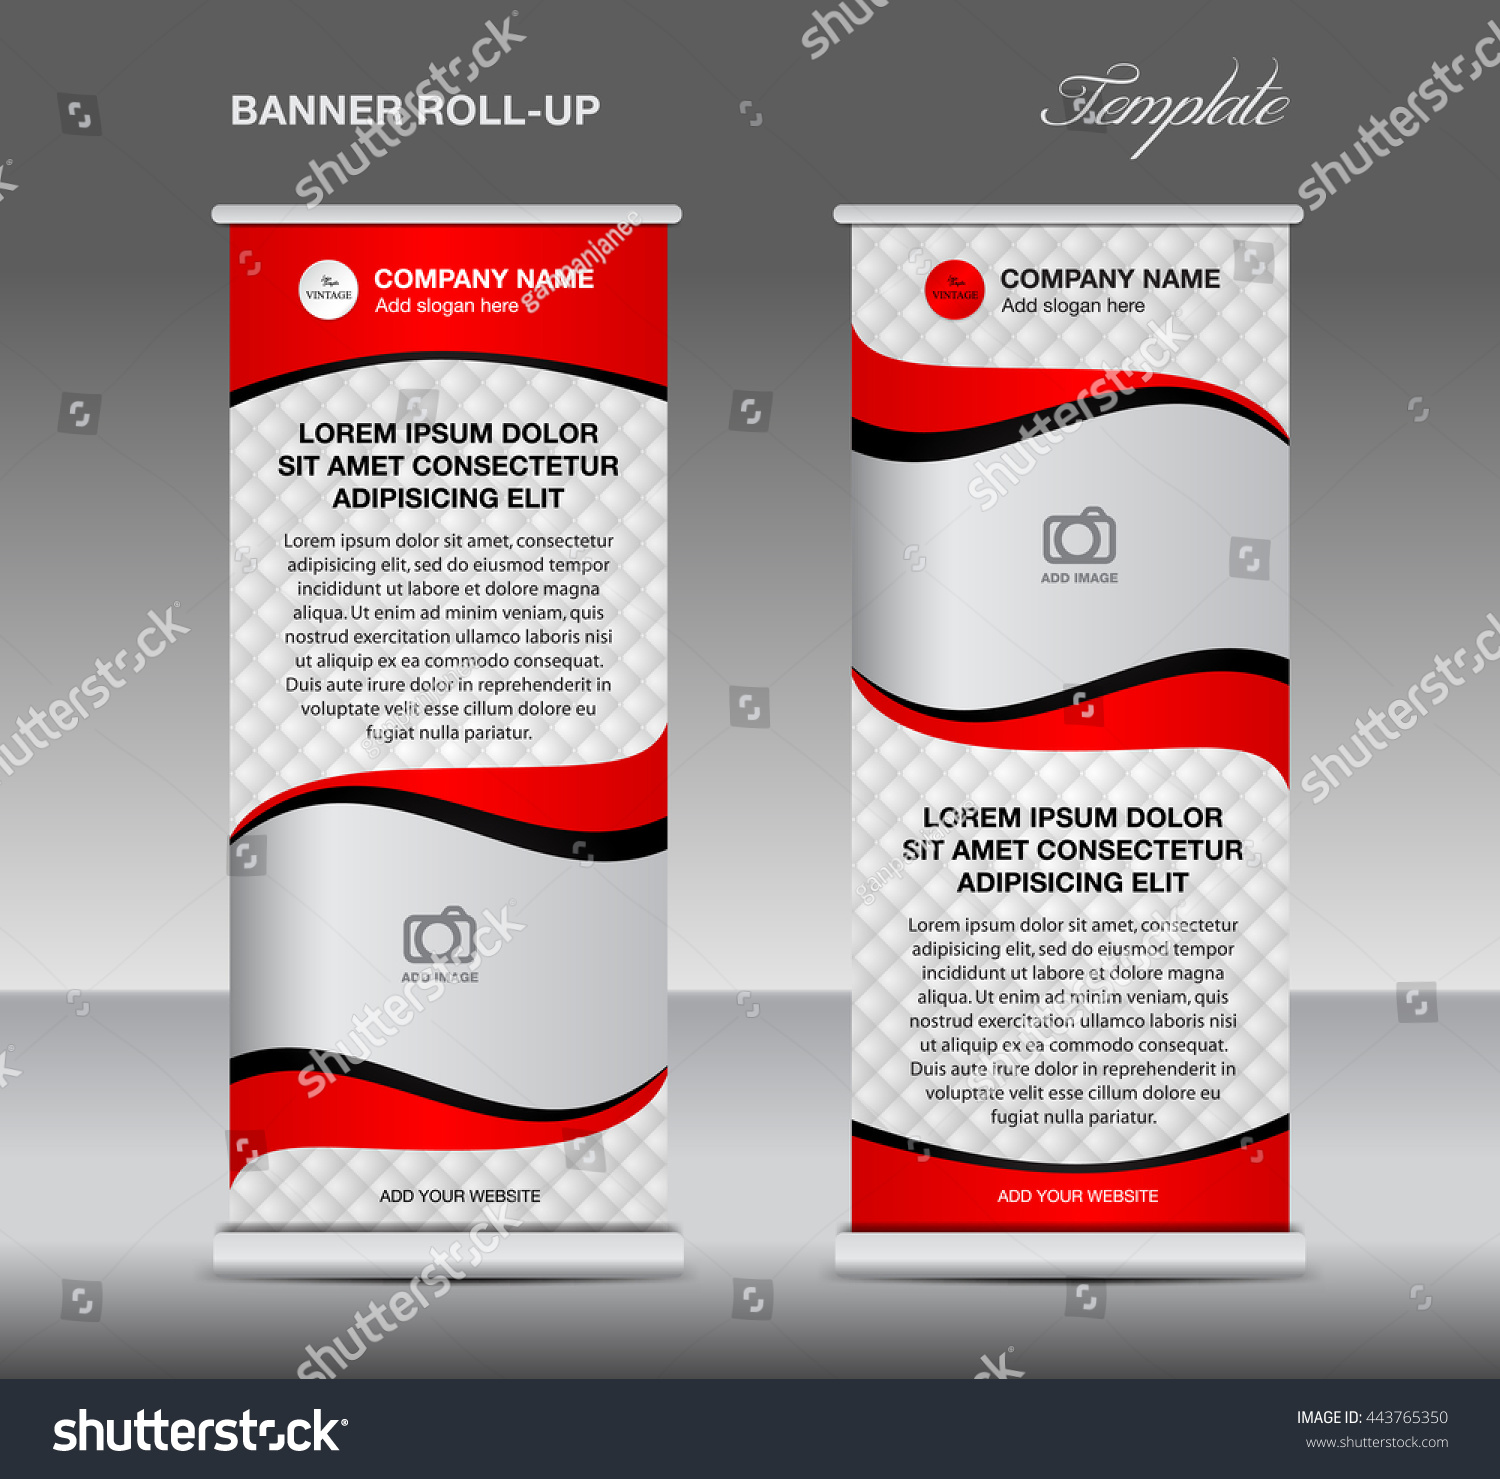 red roll up banner stand template vintage corporate design flyer red roll up banner stand template vintage corporate design flyer vector advertisement display